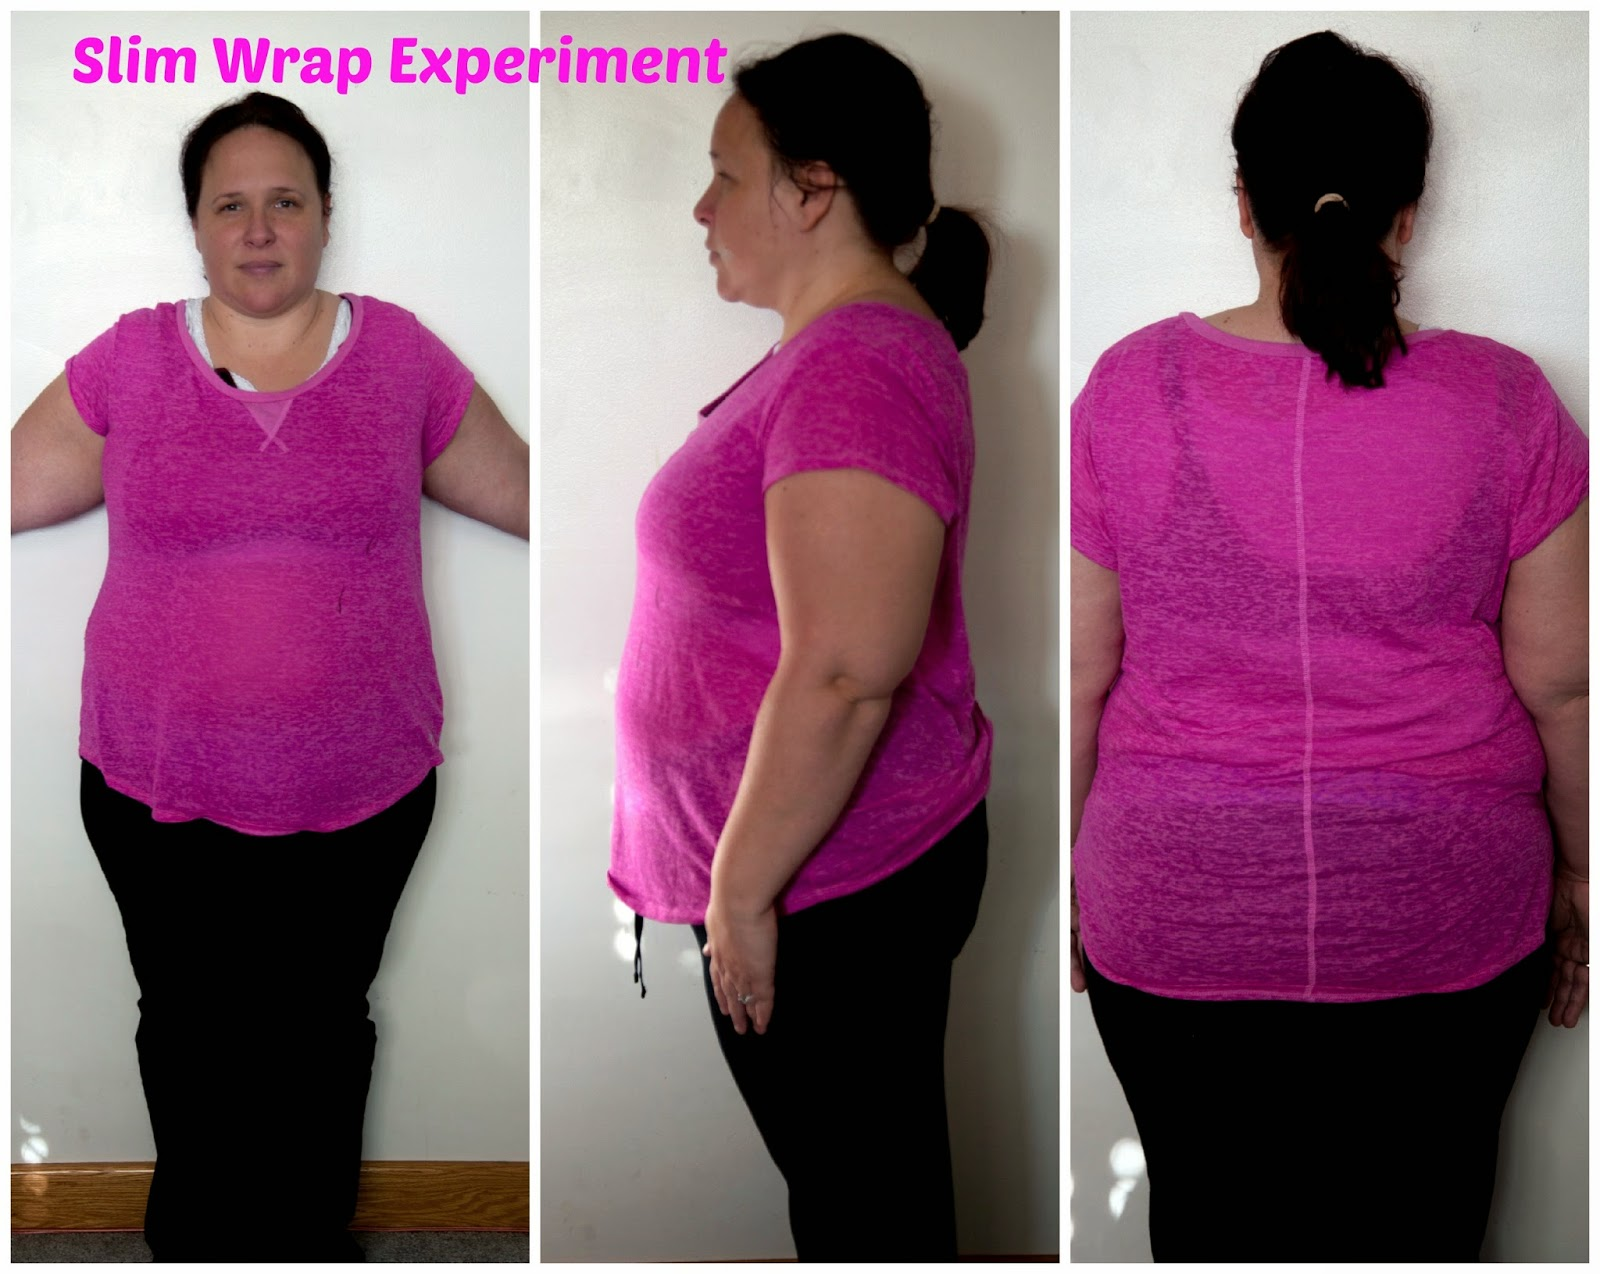 Rockin Body Weight Loss MOBU Herbals Slim Wrap